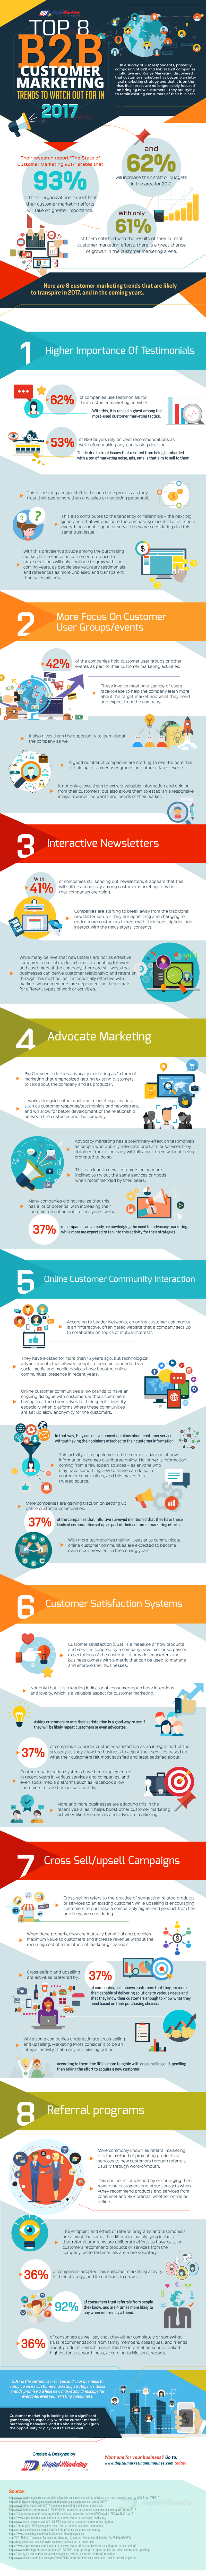 Top Most Emerging B2B Customer Marketing Trends This Year – Infographic